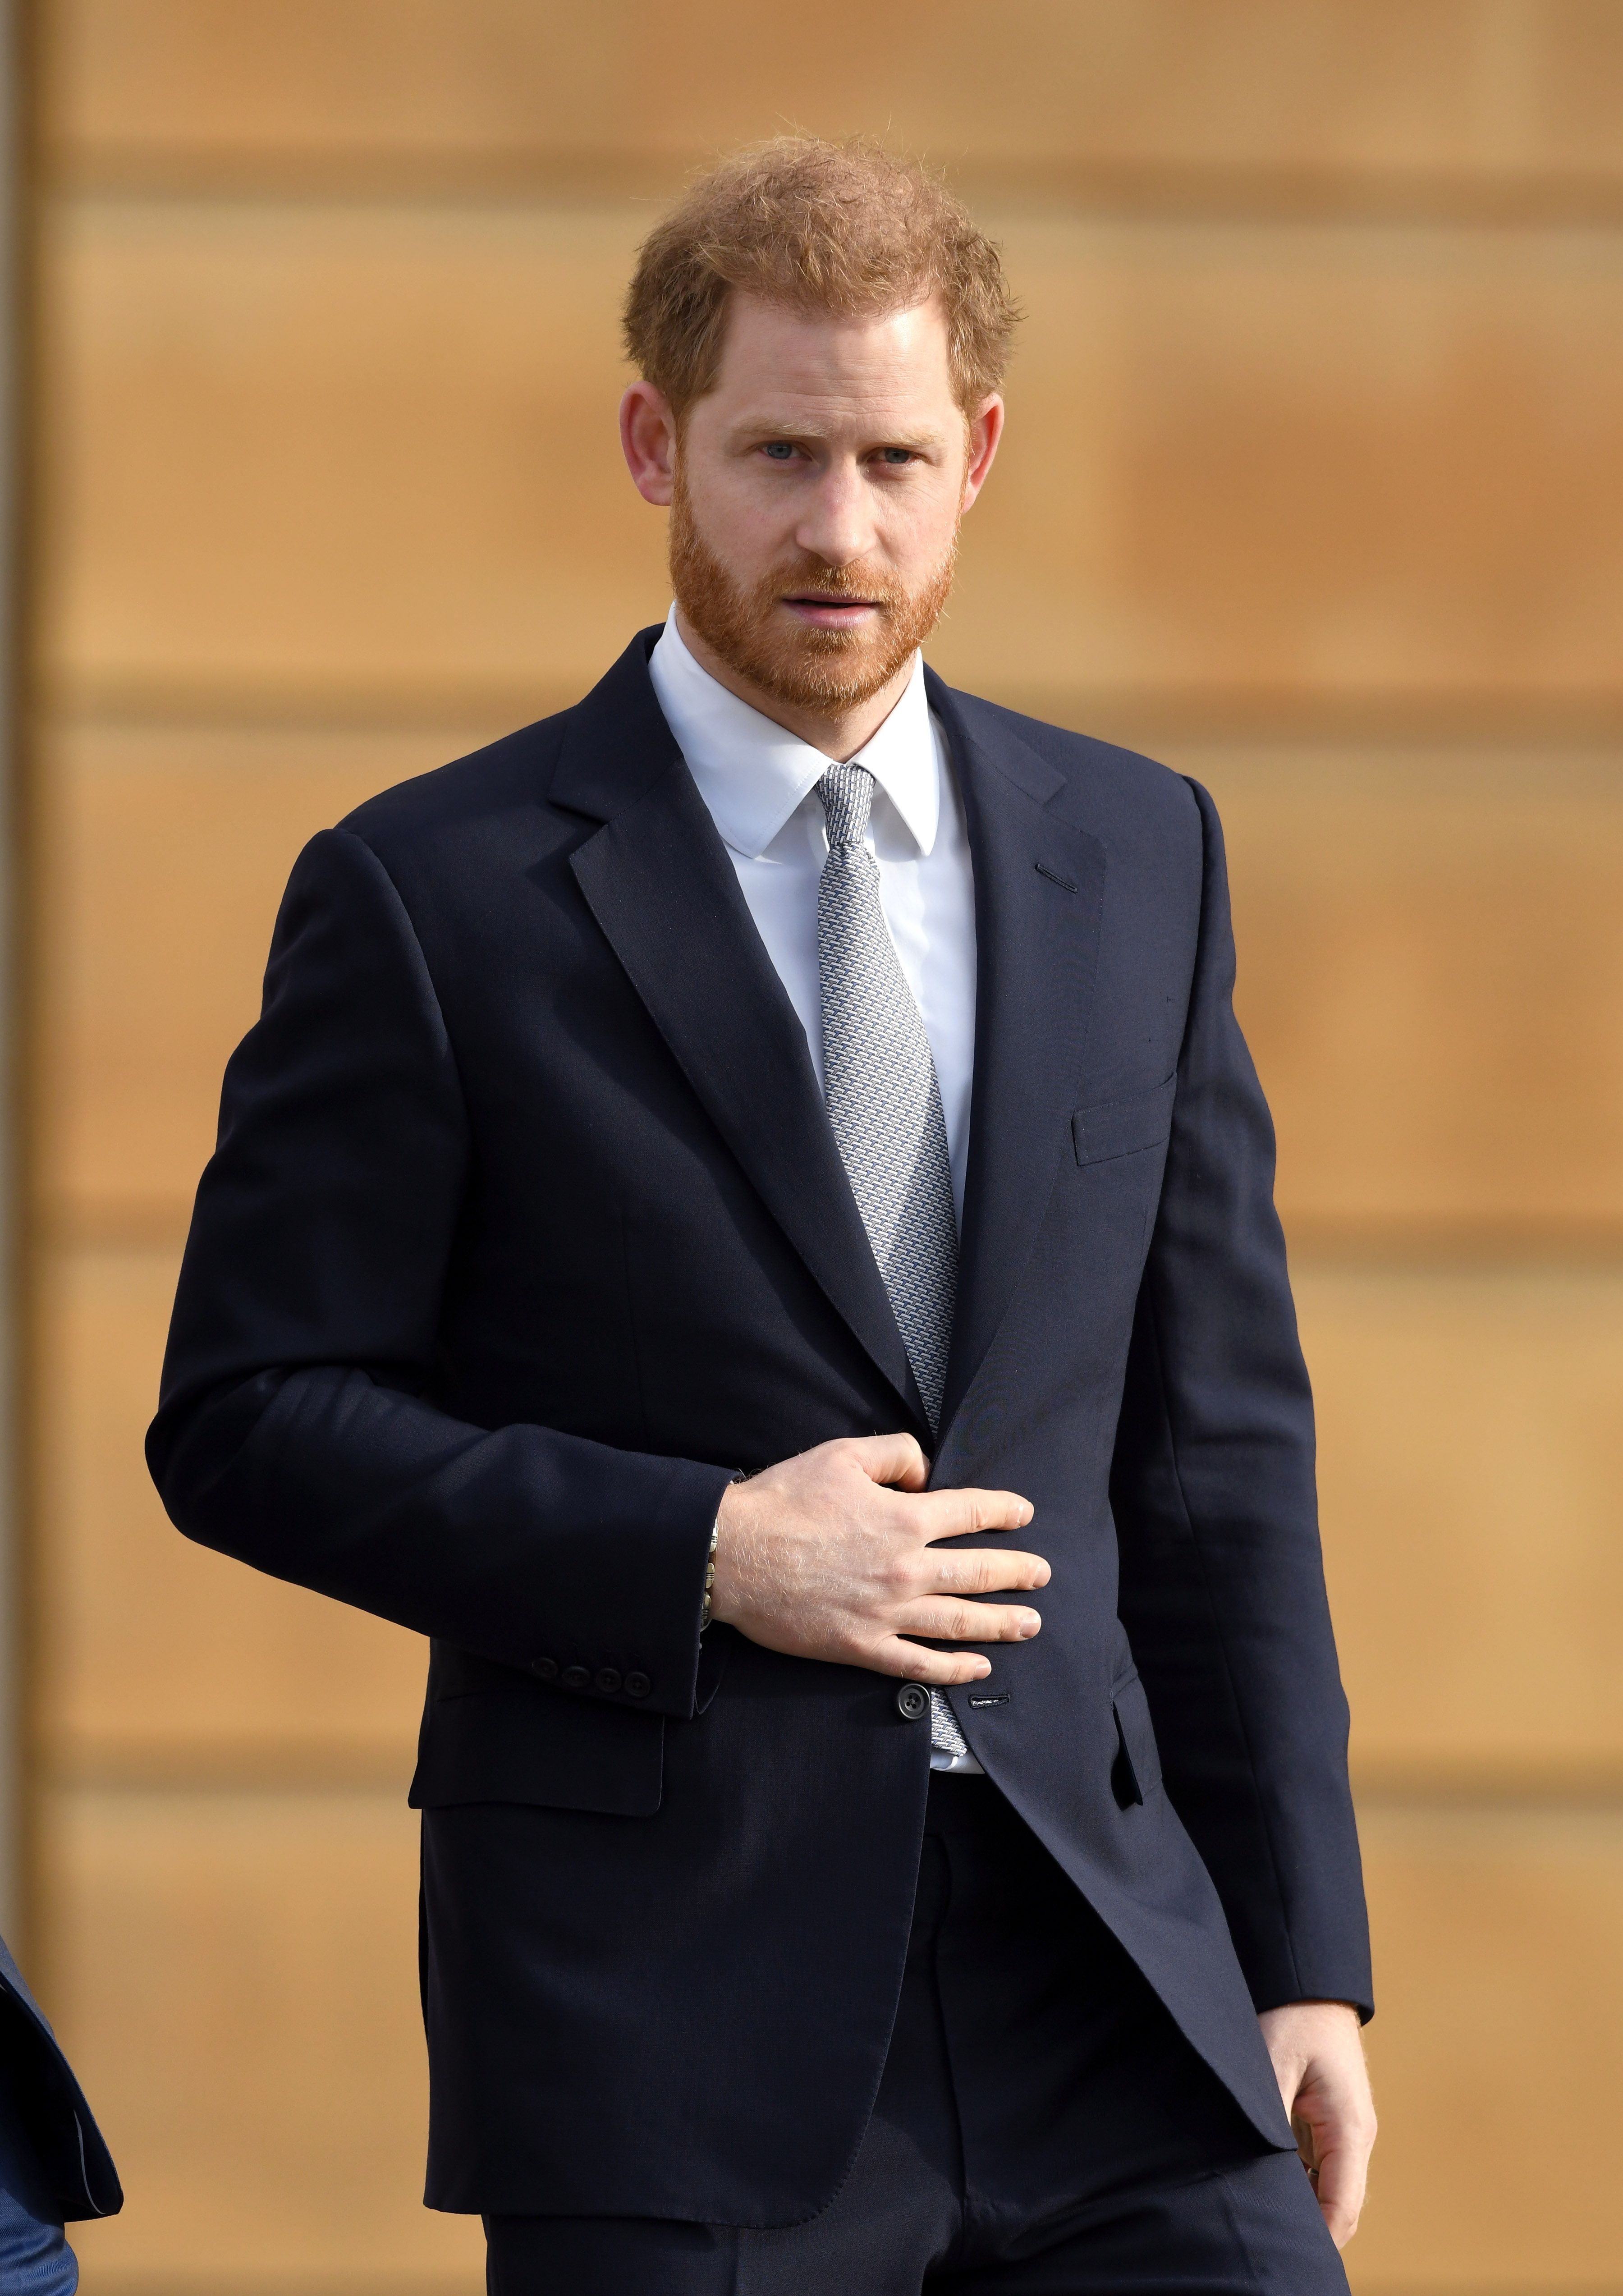 Prince Harry says misinformation on social media is a serious threat to democracy